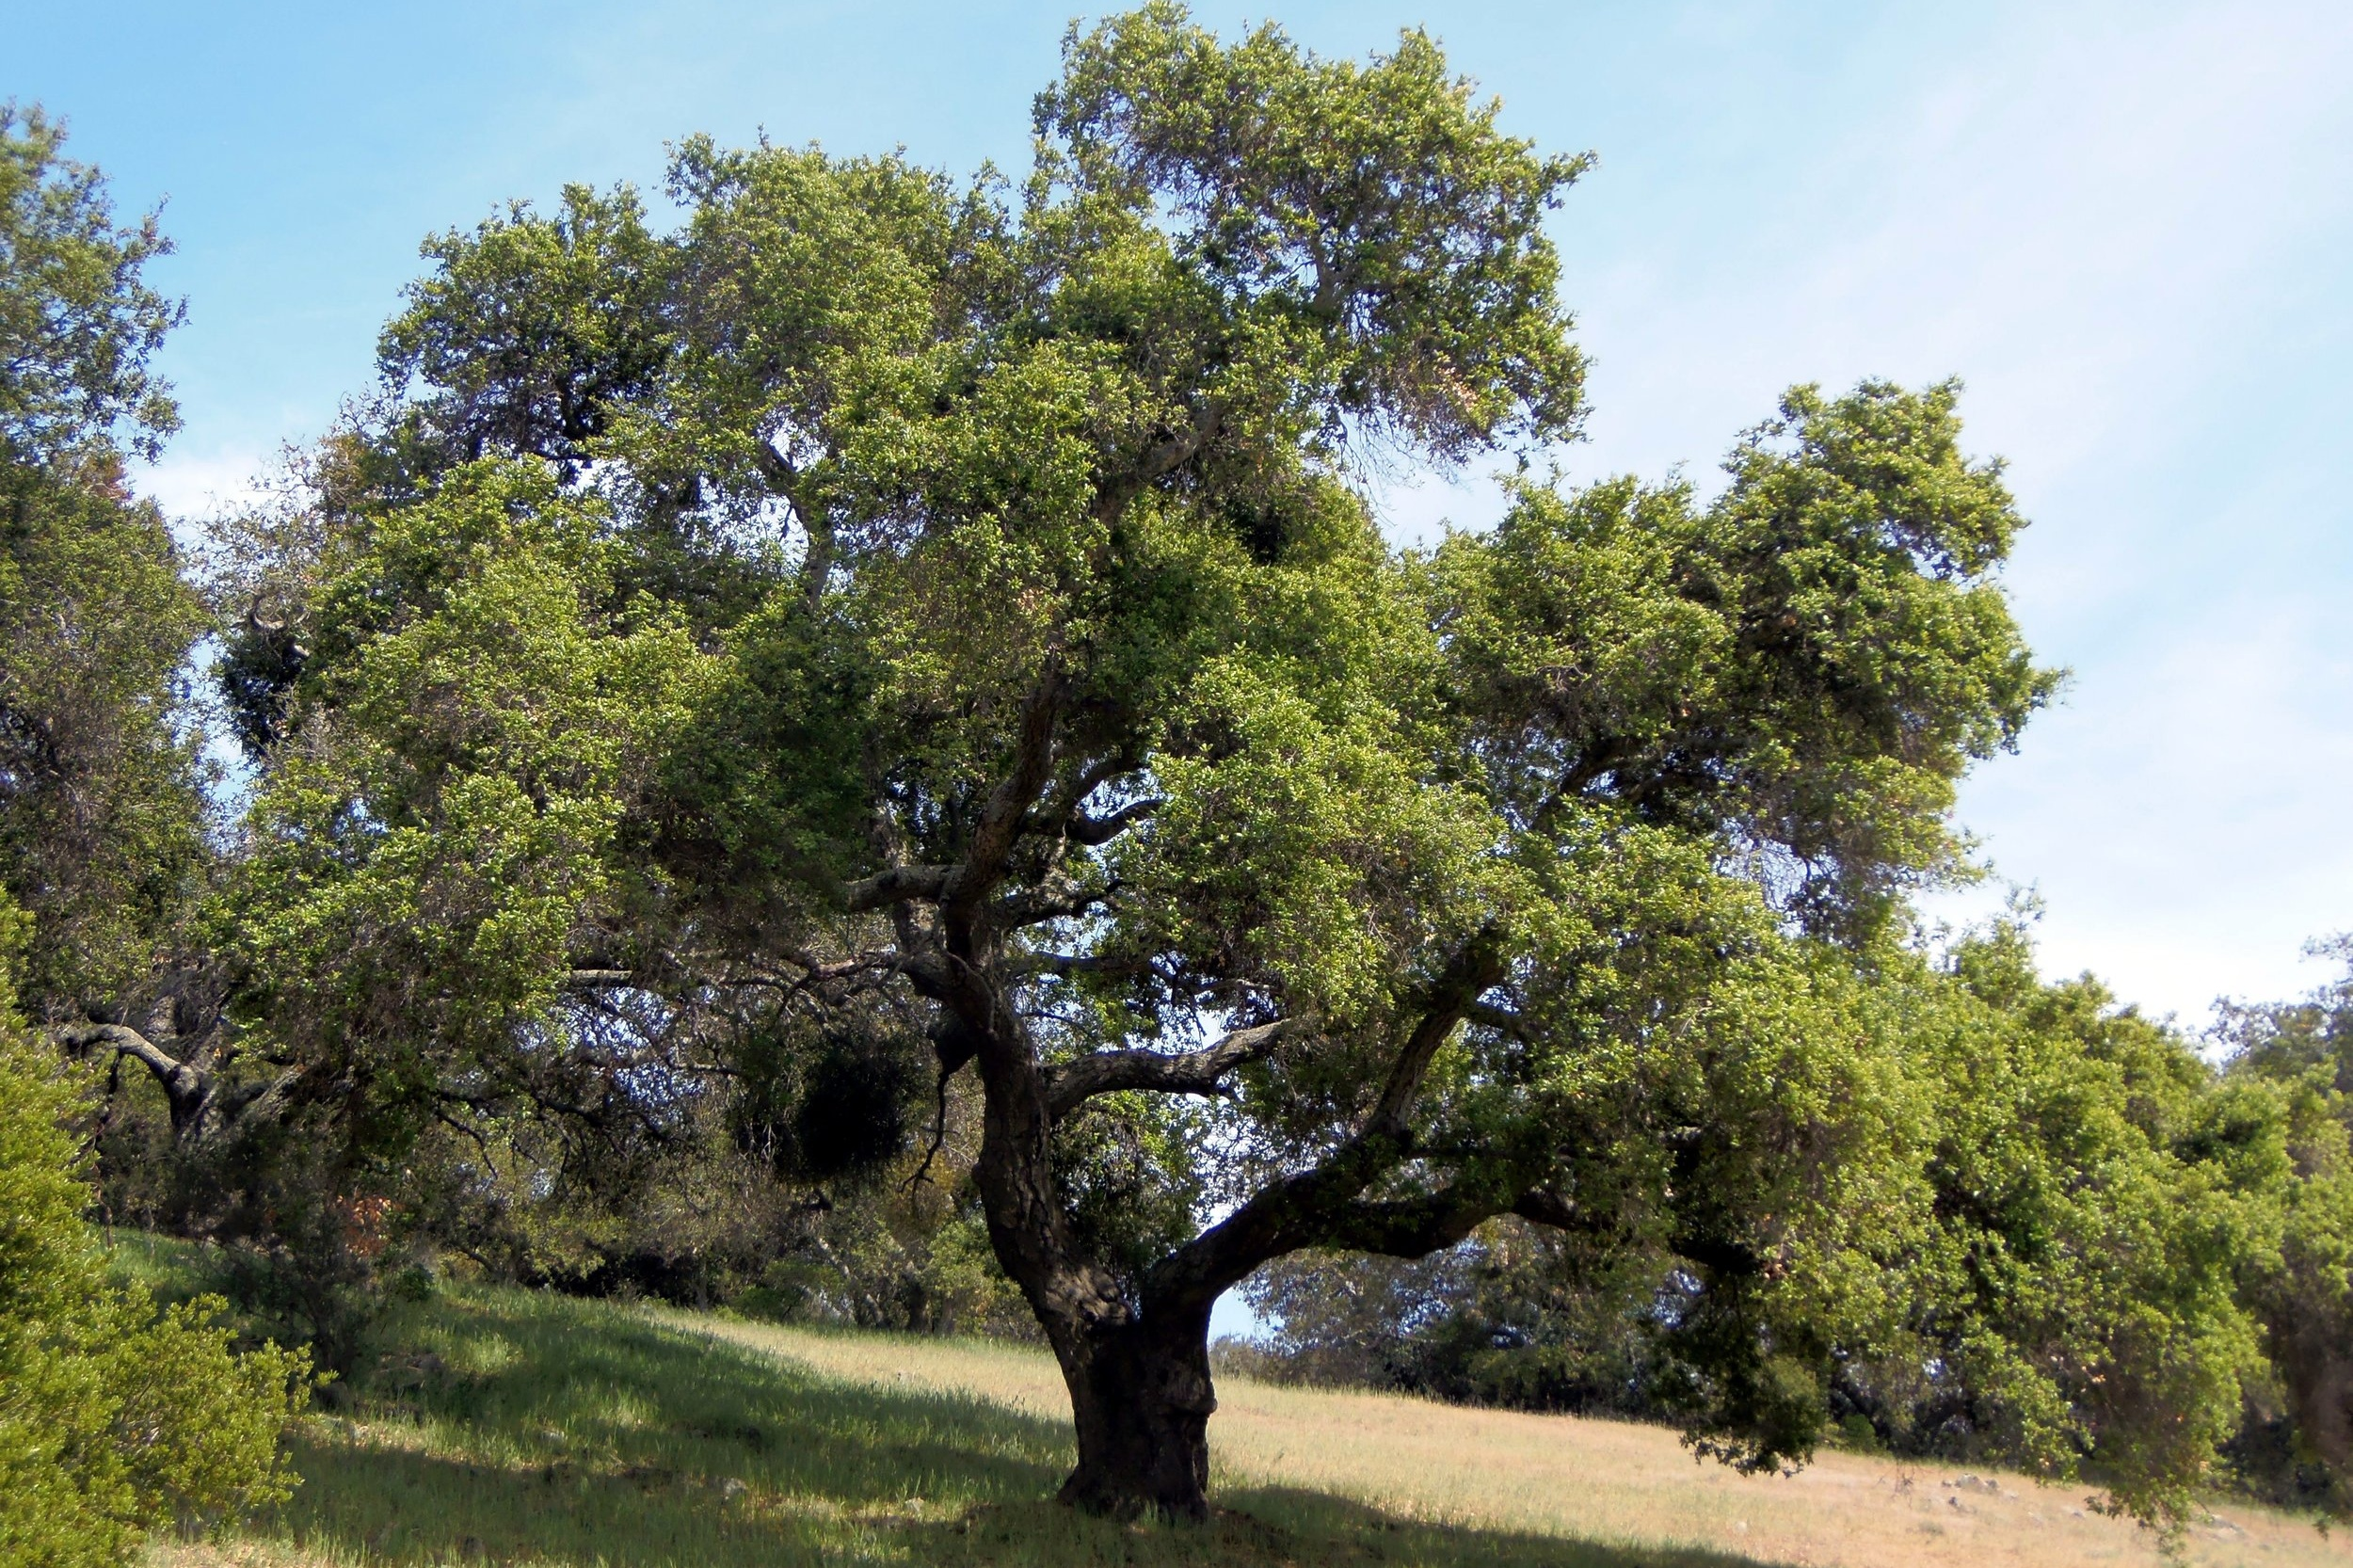 Quercus agrifolia -  Tree  ⬈ Reaching a height of 40-60' and a width of 40-50' ☀ Full Sun ☂ Low  A water efficient, evergreen tree of open-grown and broad crowns with foliage often reaching the ground.